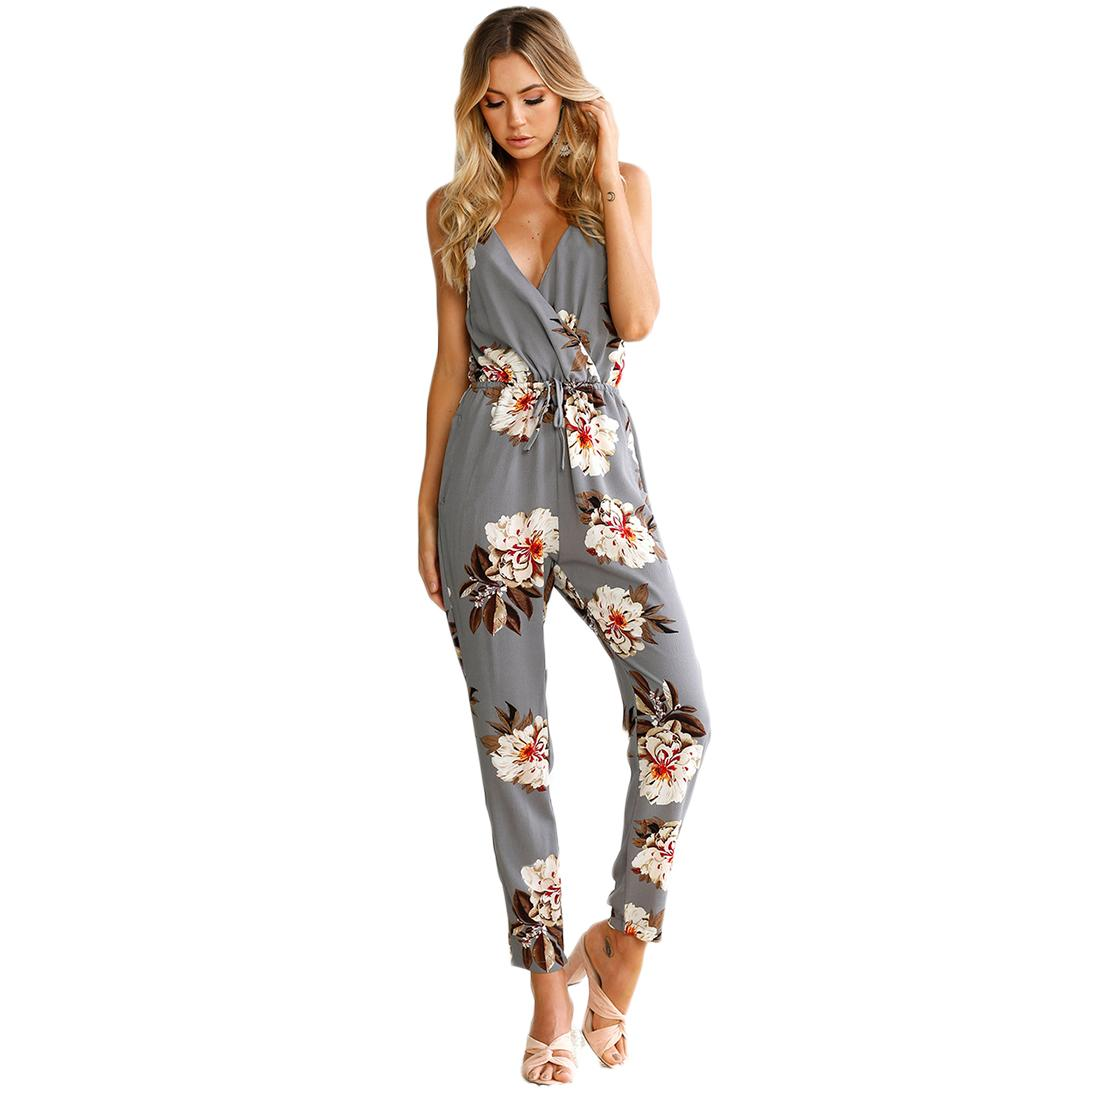 525ec60aa35 2019 Wholesale Fashion Jumpsuit Women Romper Spaghetti Straps Long Playsuit Floral  Print Summer Bodysuit V Neck Rompers Sleeveless Jumpsuit From Roberr